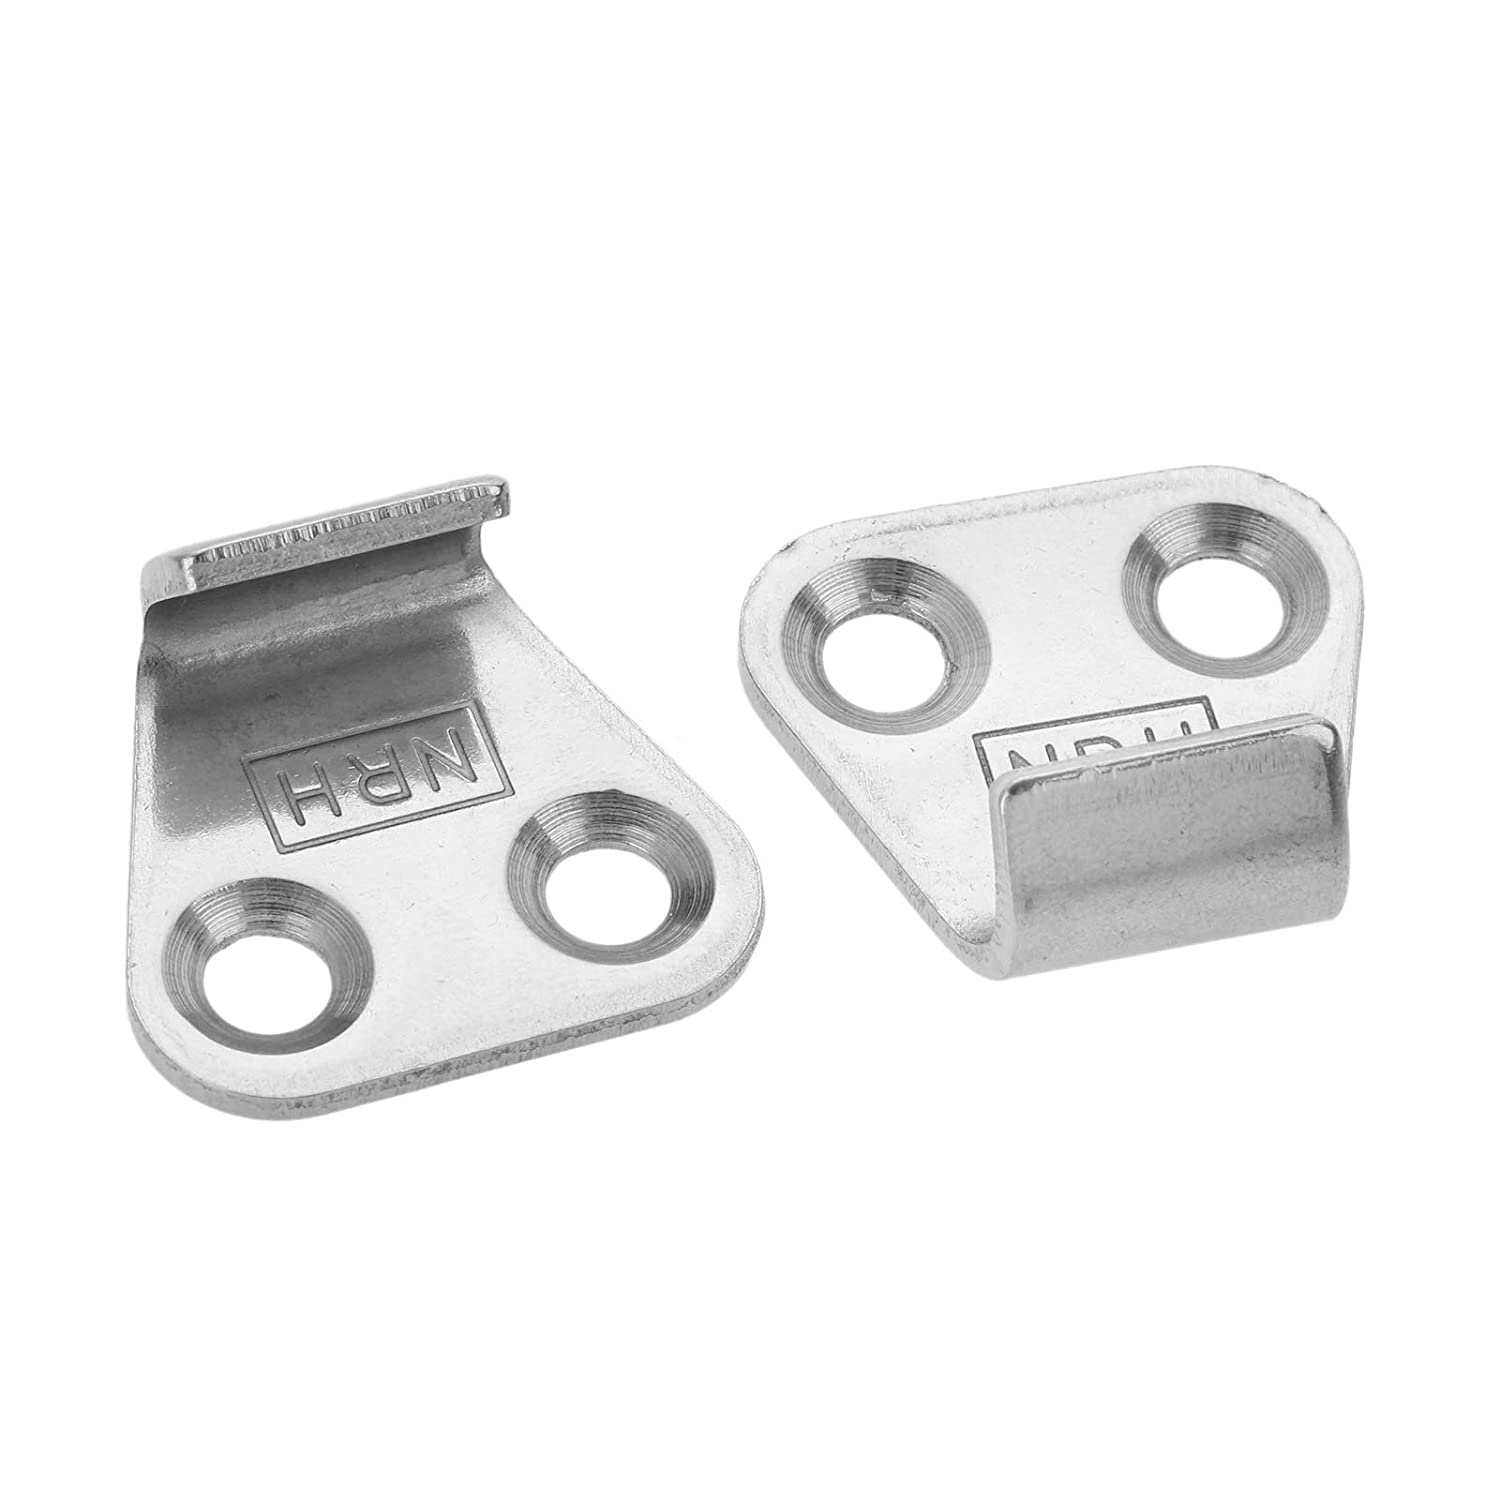 5610A 5 Pcs Adjustable Toggle Clamp Has Hole Diameter: 5MM//0.20 Stainless Steel Spring Loaded Toggle Case Box Chest Trunk Latch Catches Hasp